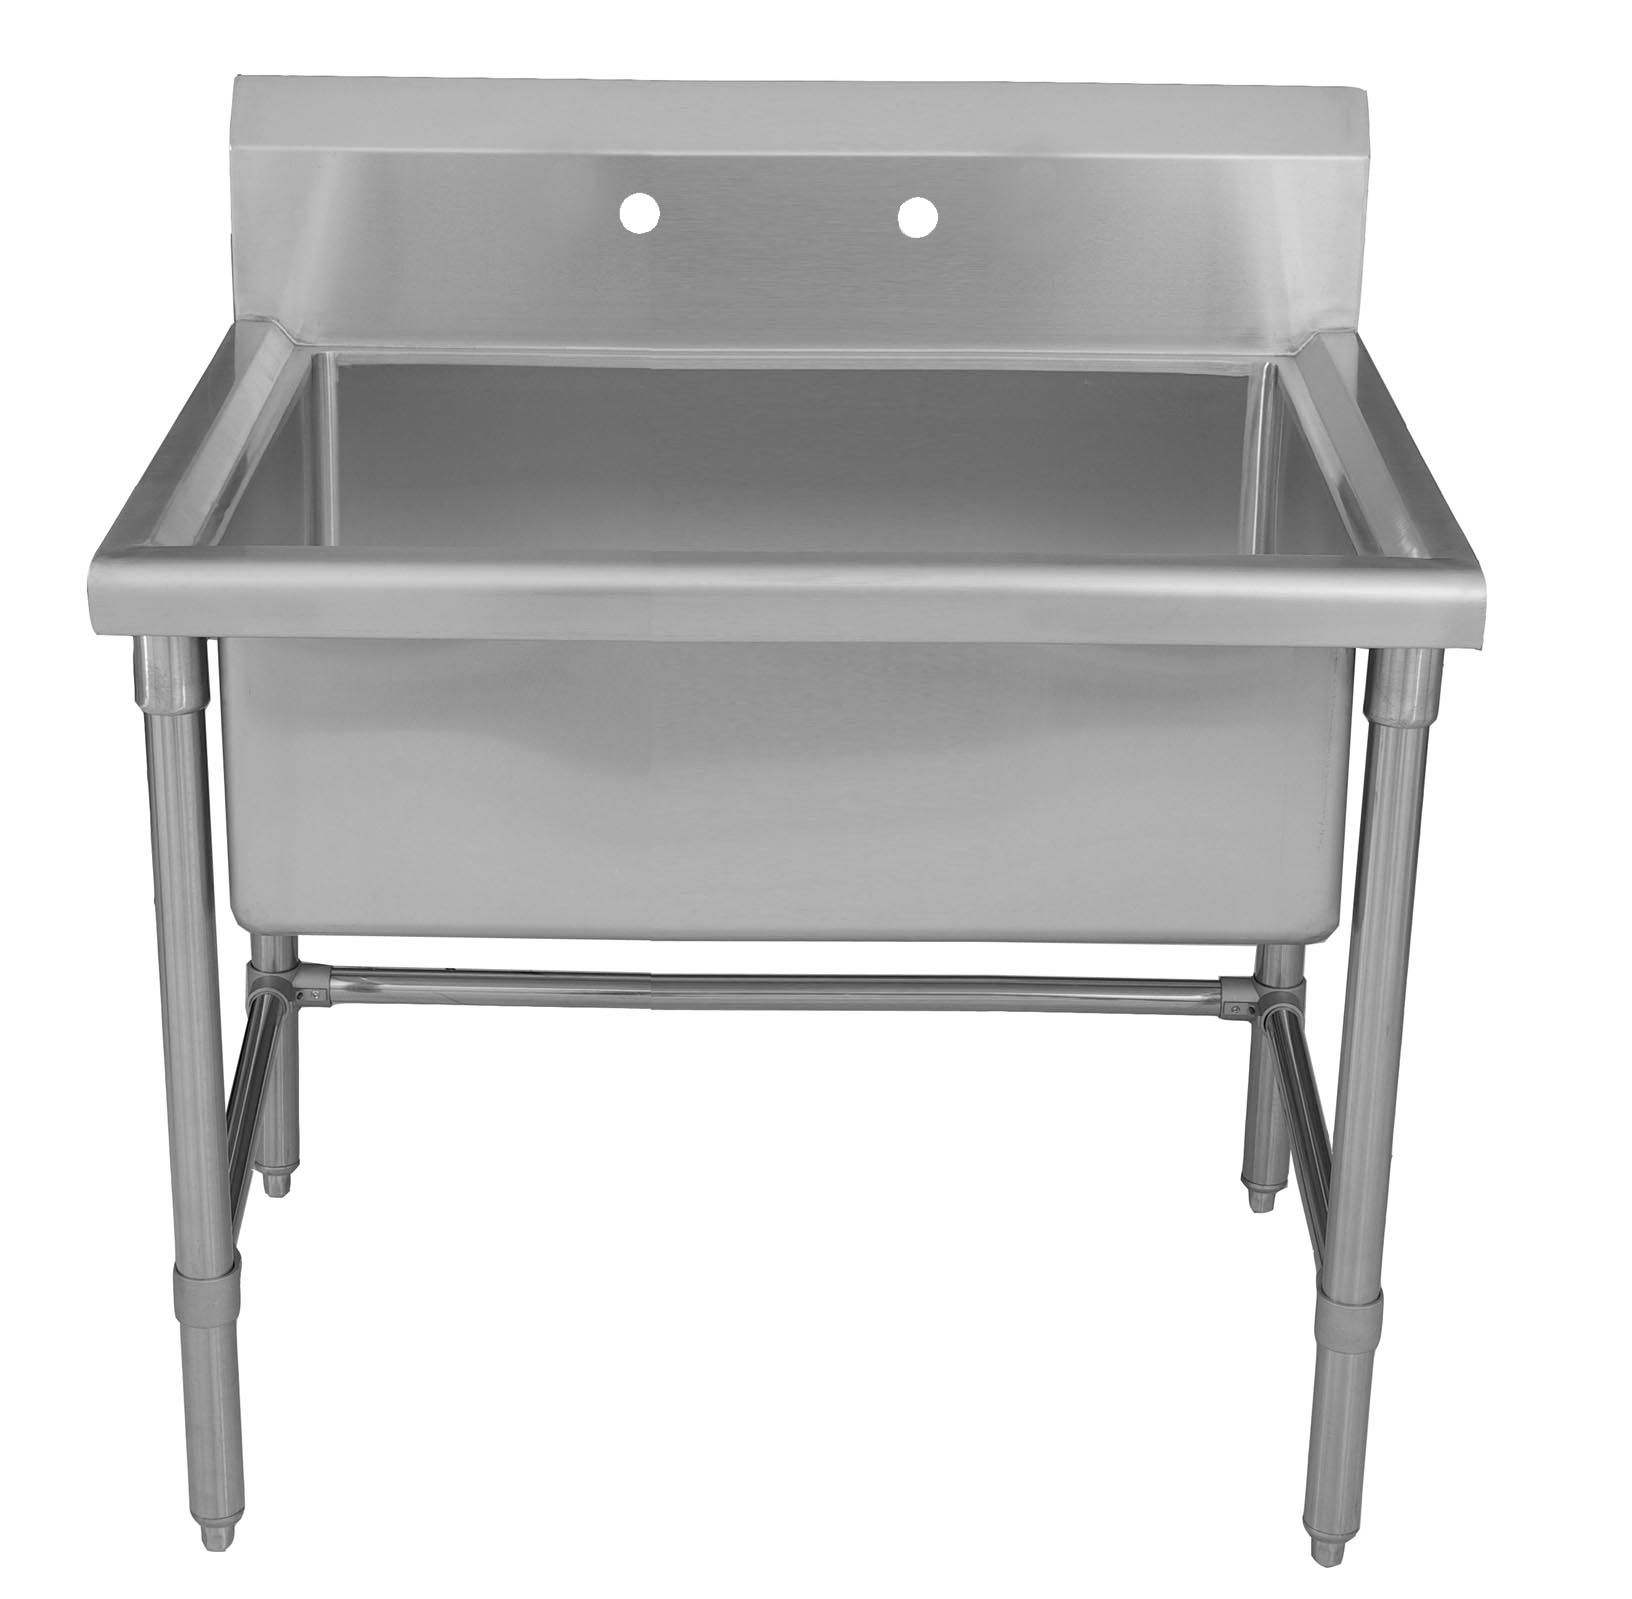 High Quality #Whitehaus Stainless Steel Large Freestanding Commercial Utility Sink  WHLS3618 With Pre Drilled Holes For